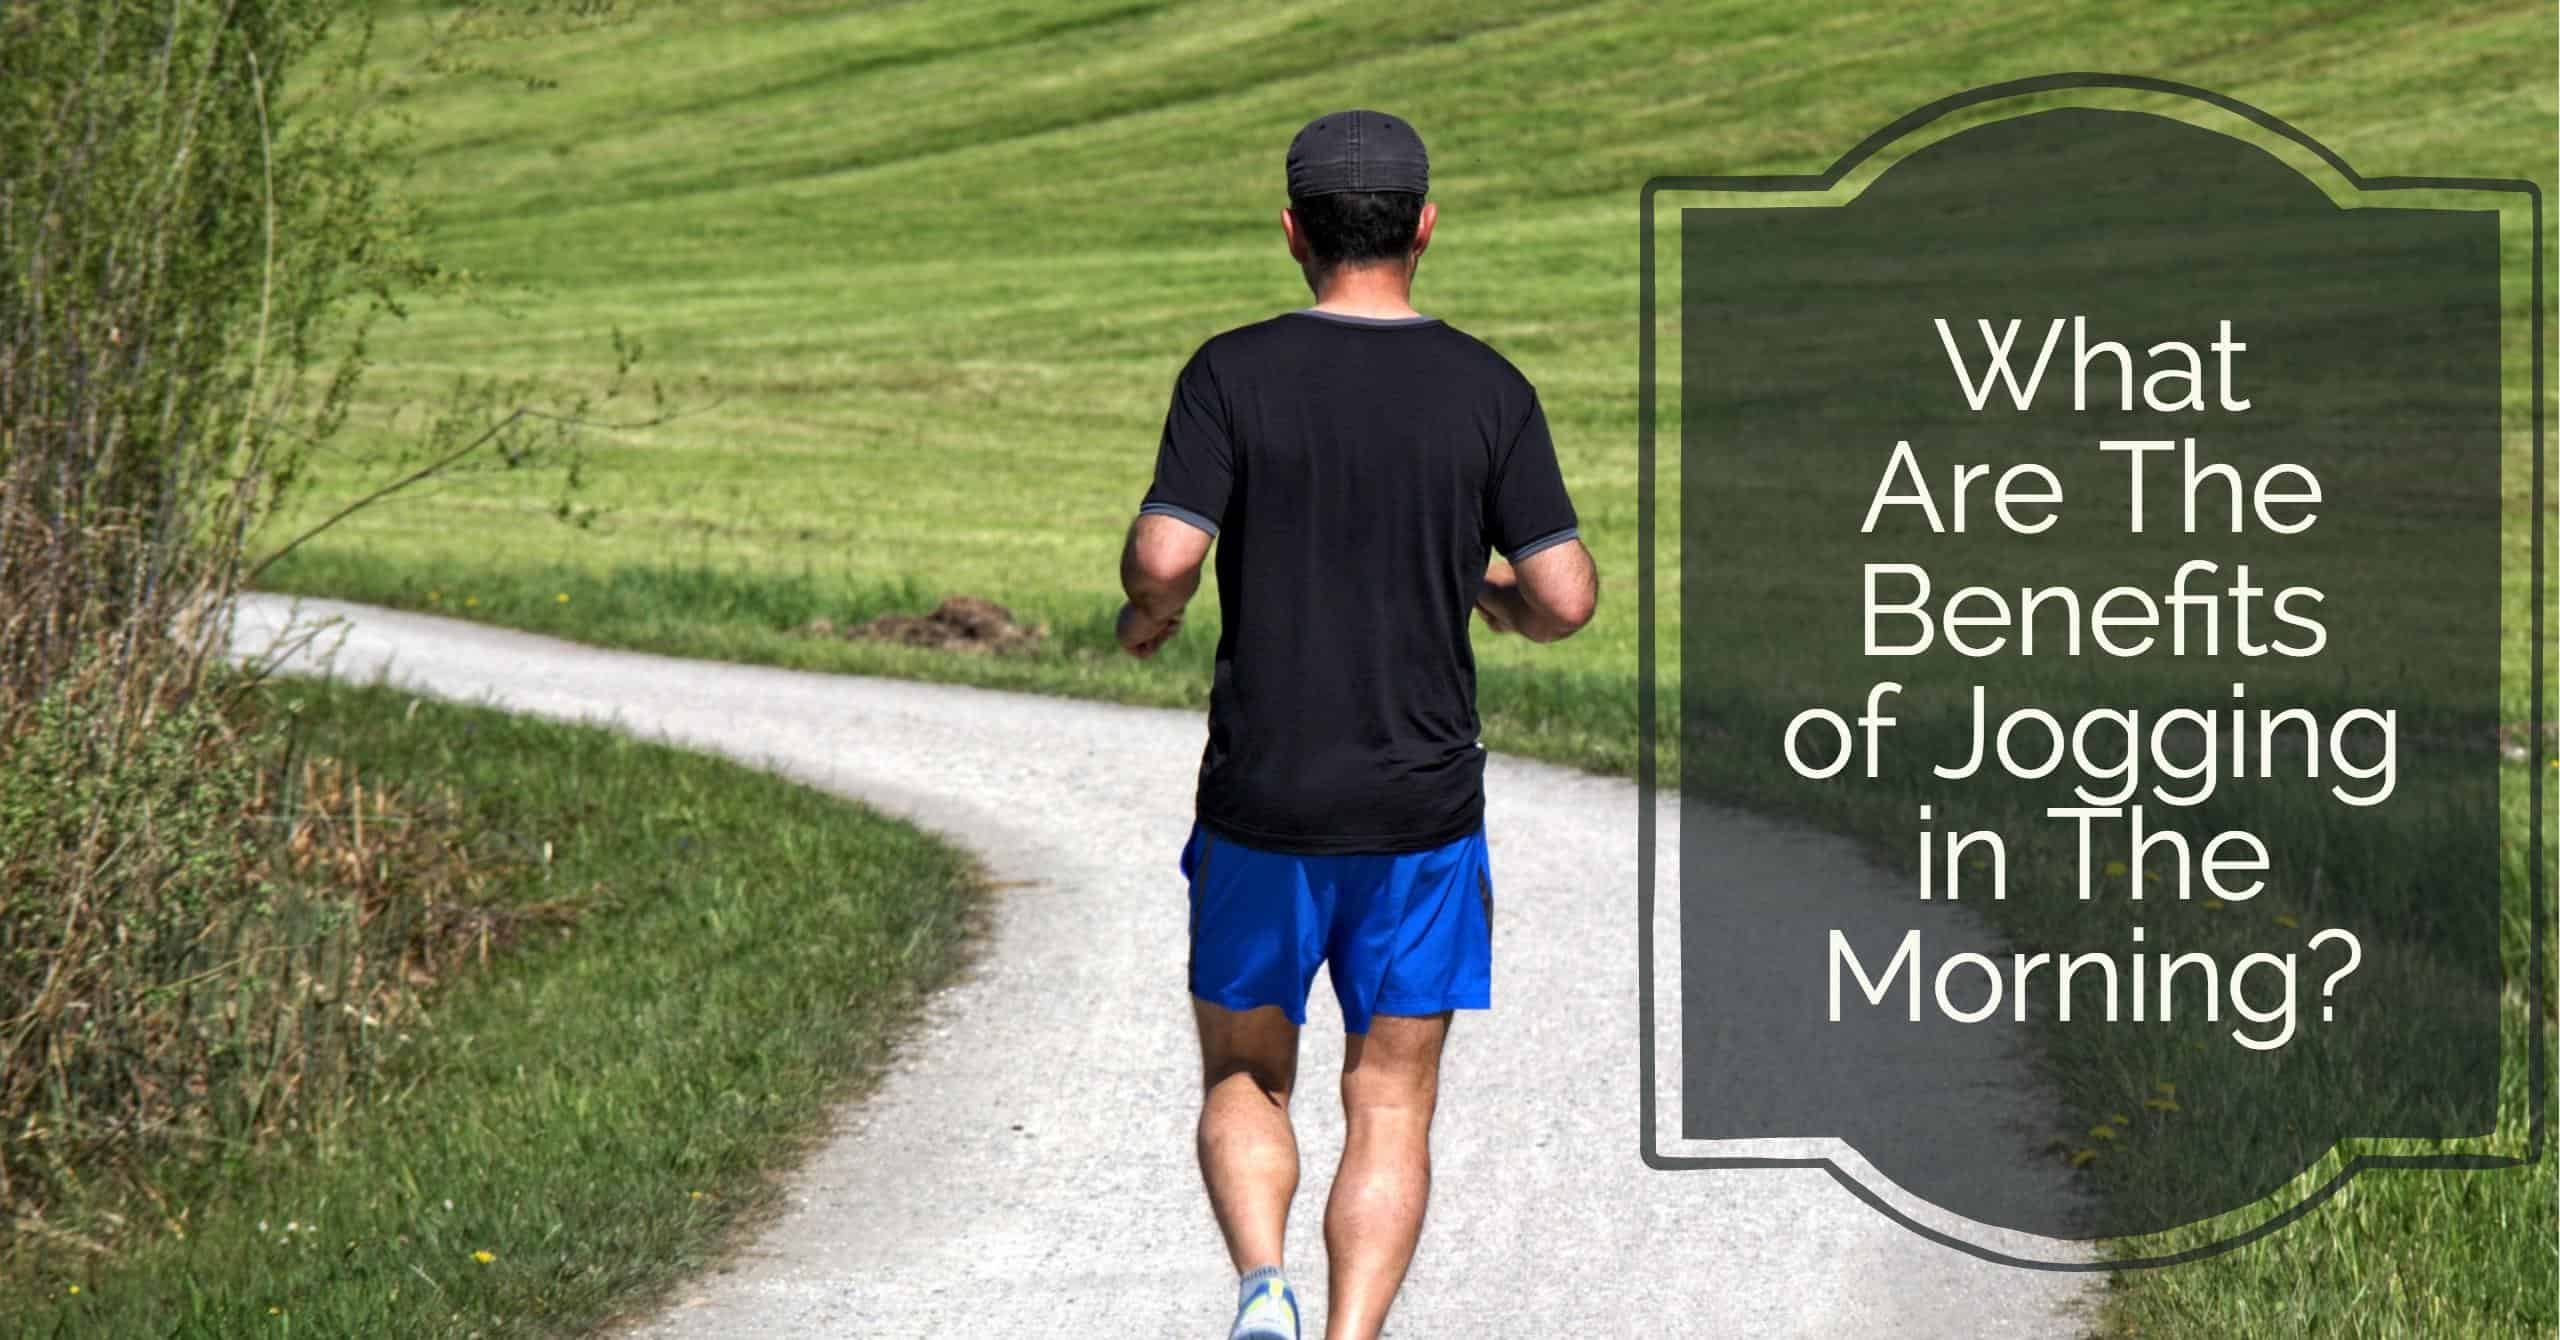 What Are The Benefits of Jogging in The Morning? We break down the physical as well as other benefits.